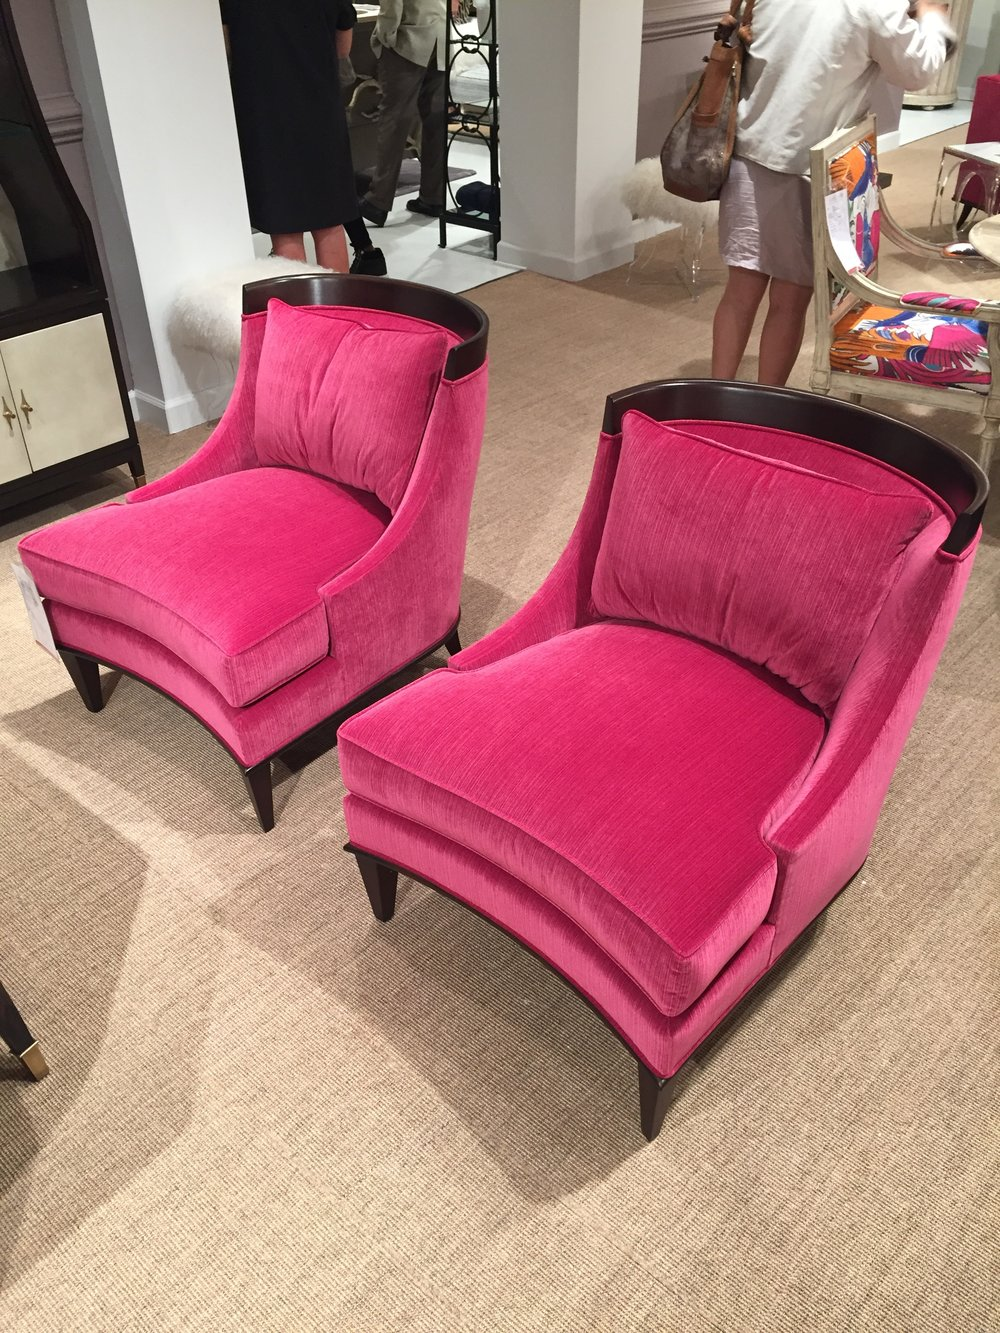 LOVELY CURVES on these pair of arm chairs. Even more comfortable than they look, Ambella Home collection.